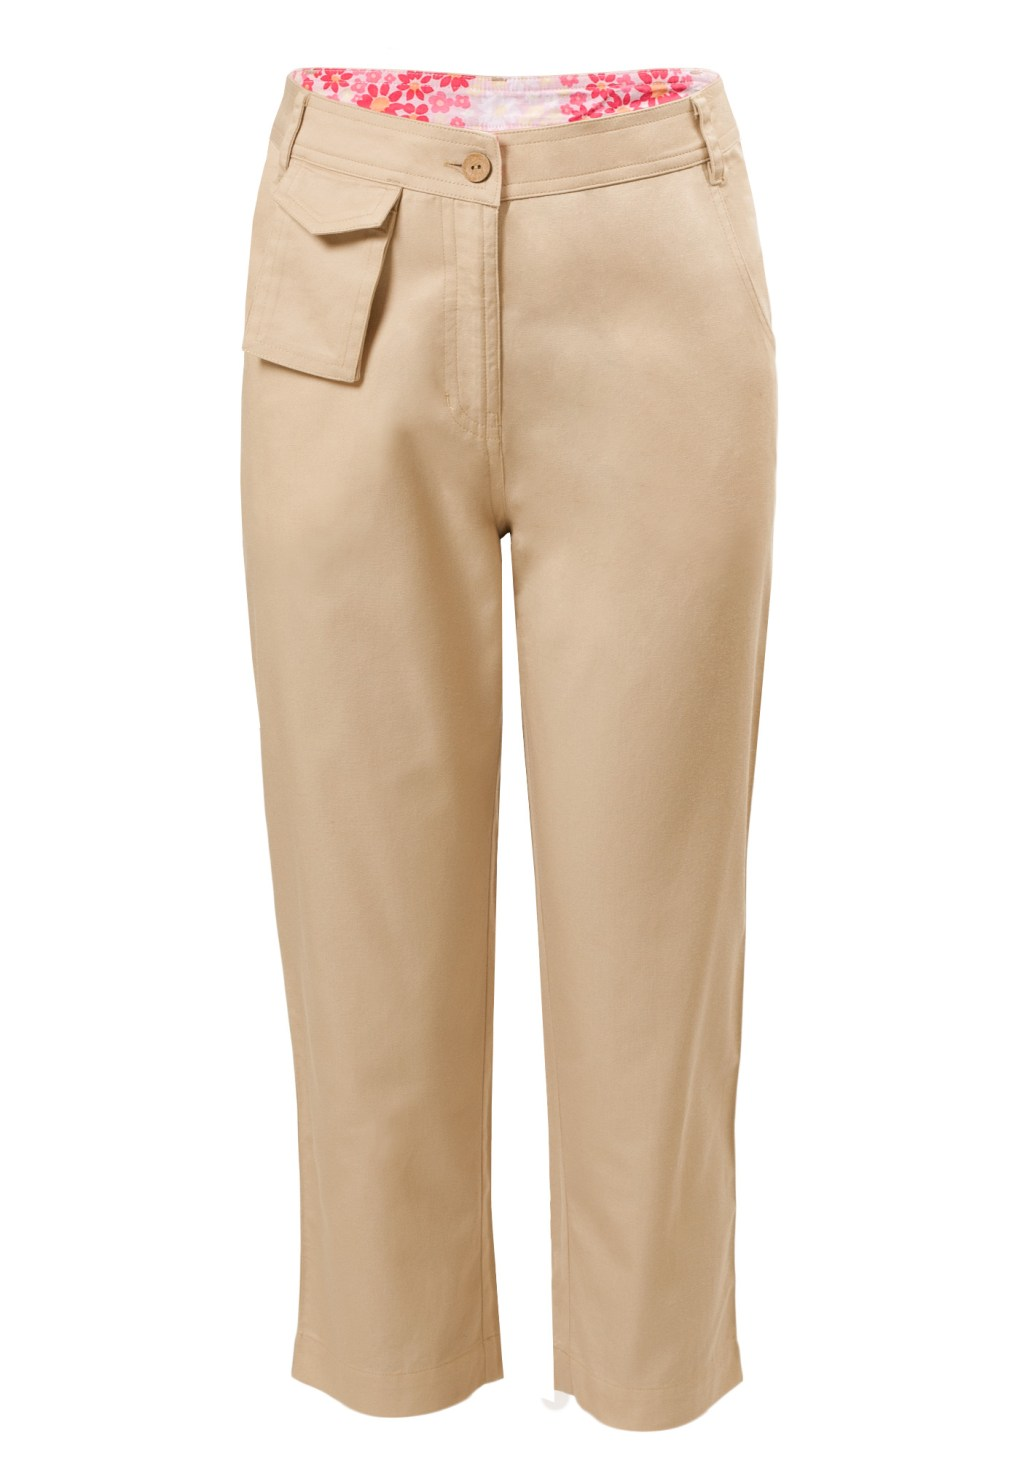 MINC Petite Girls Capris in Beige Cotton Twill